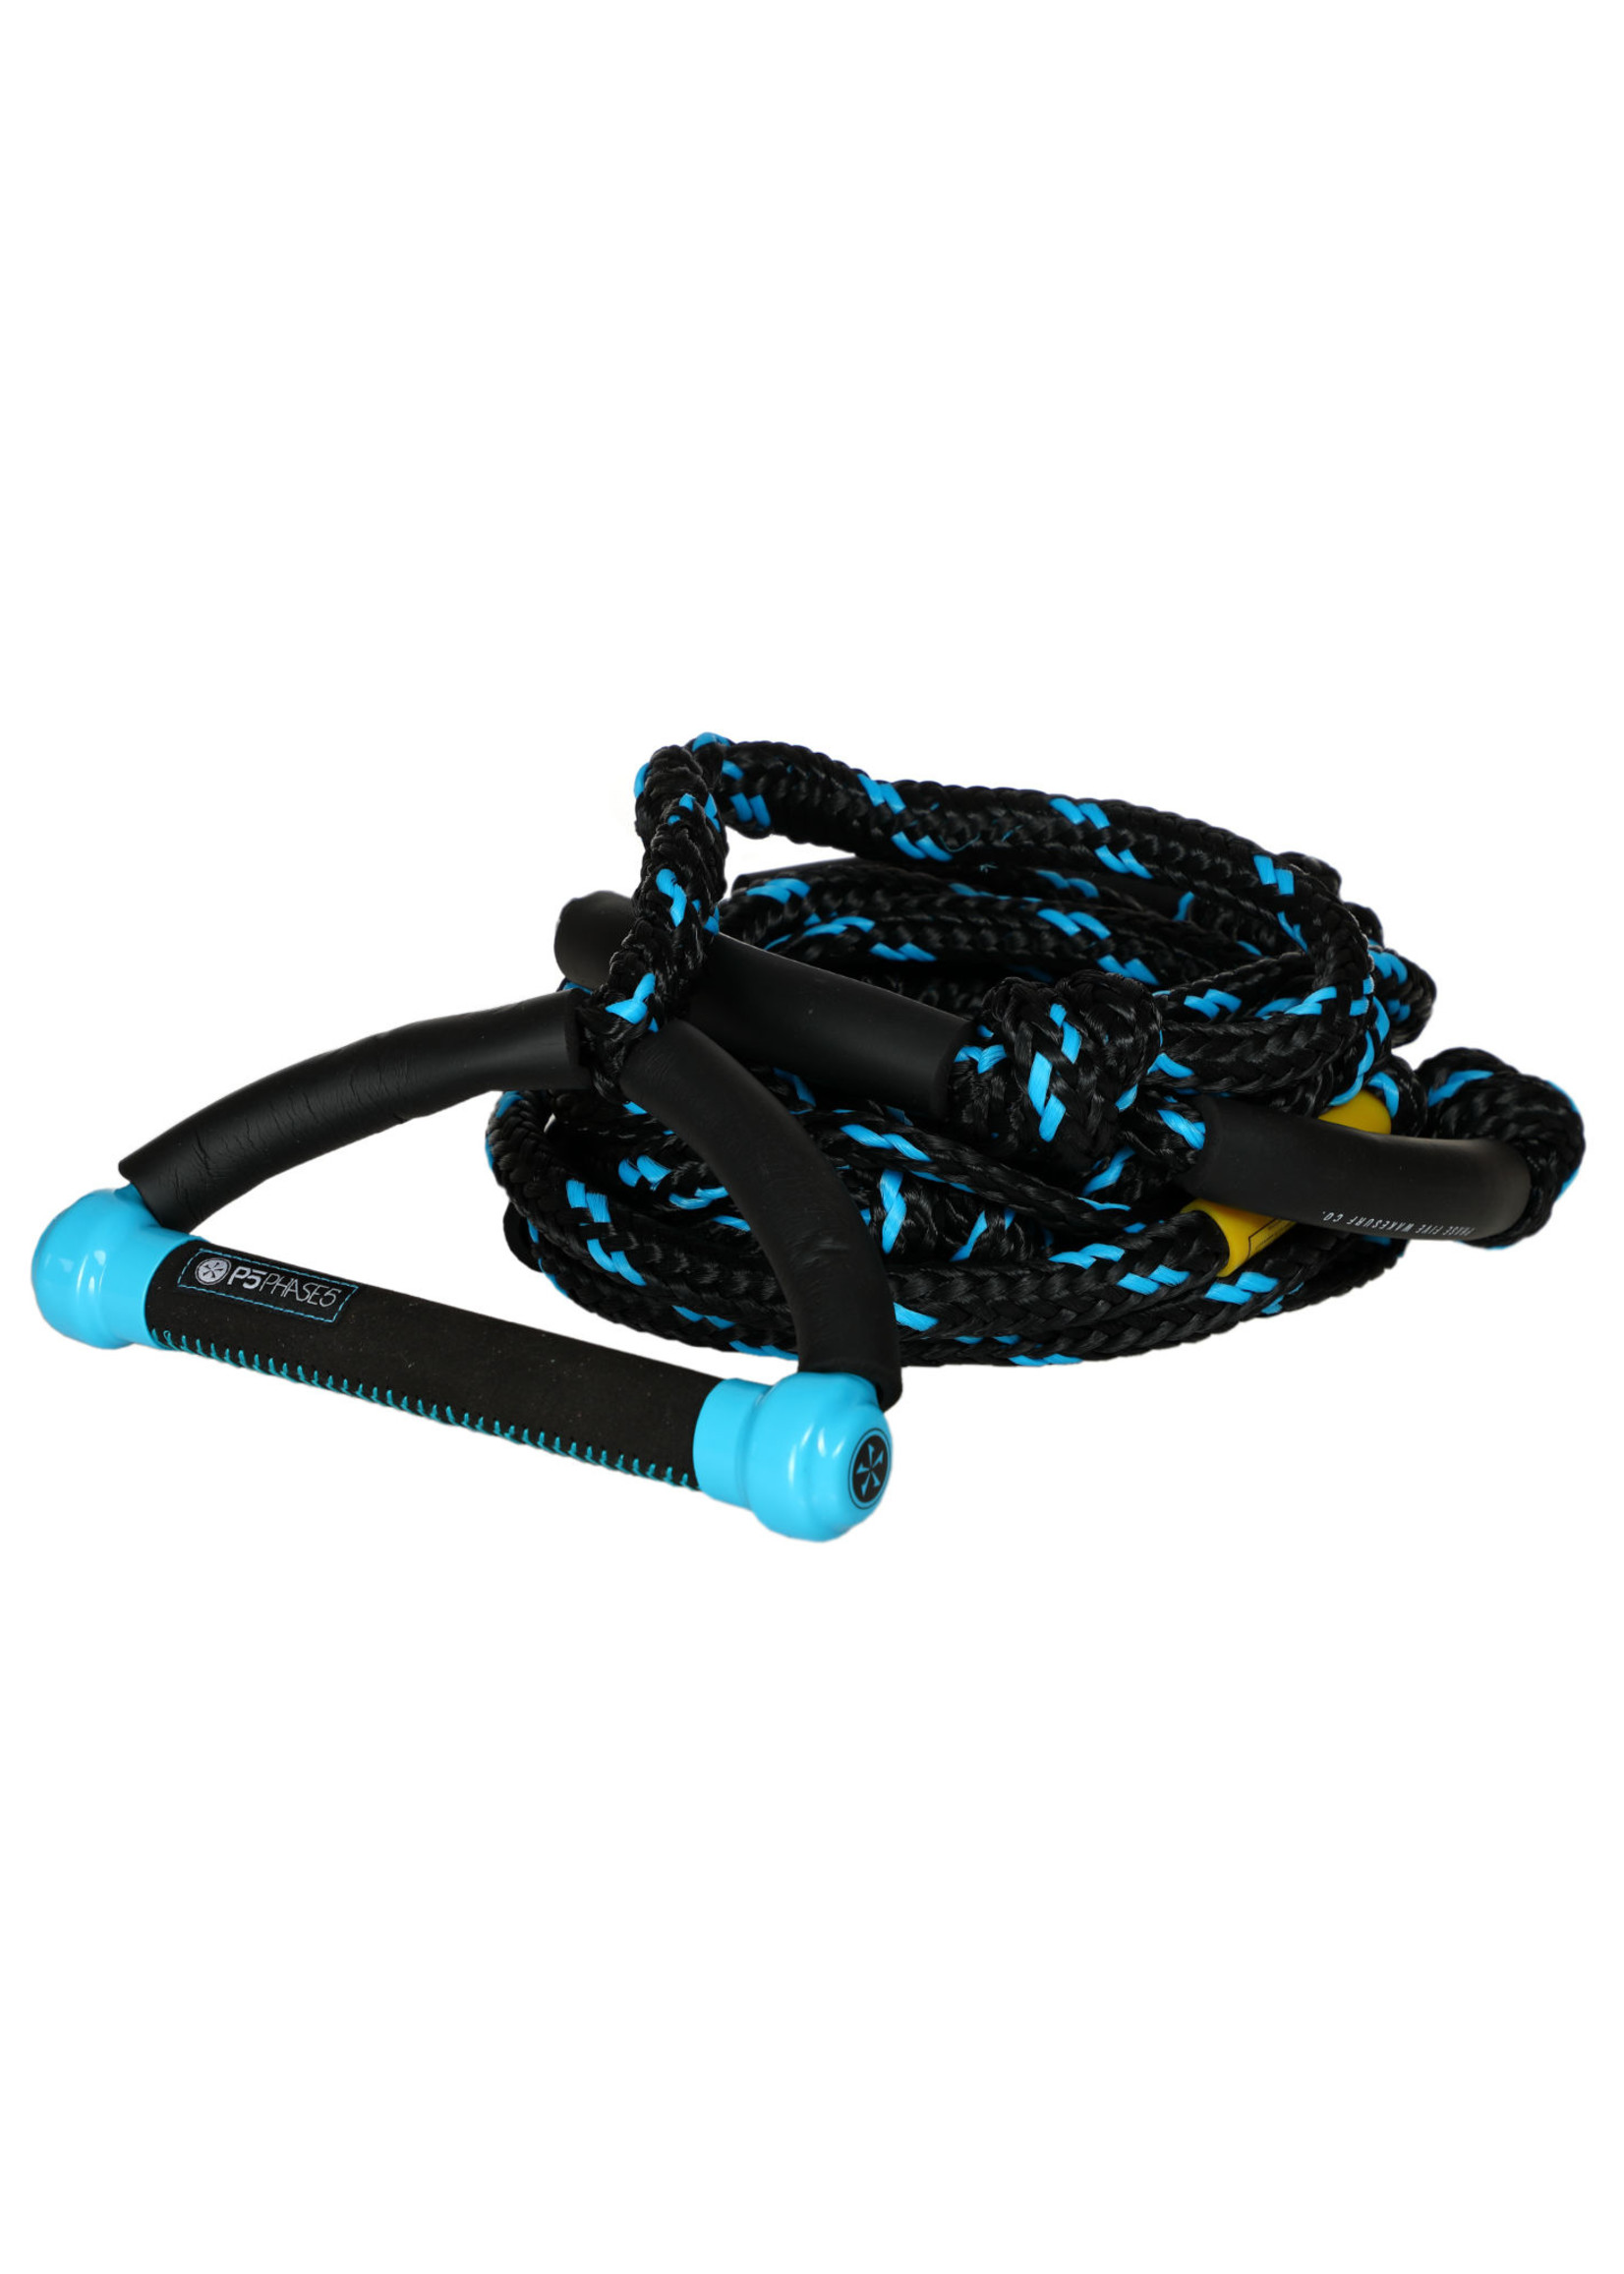 Phase Five Phase Five Pro Surf Tow Rope 24' Teal